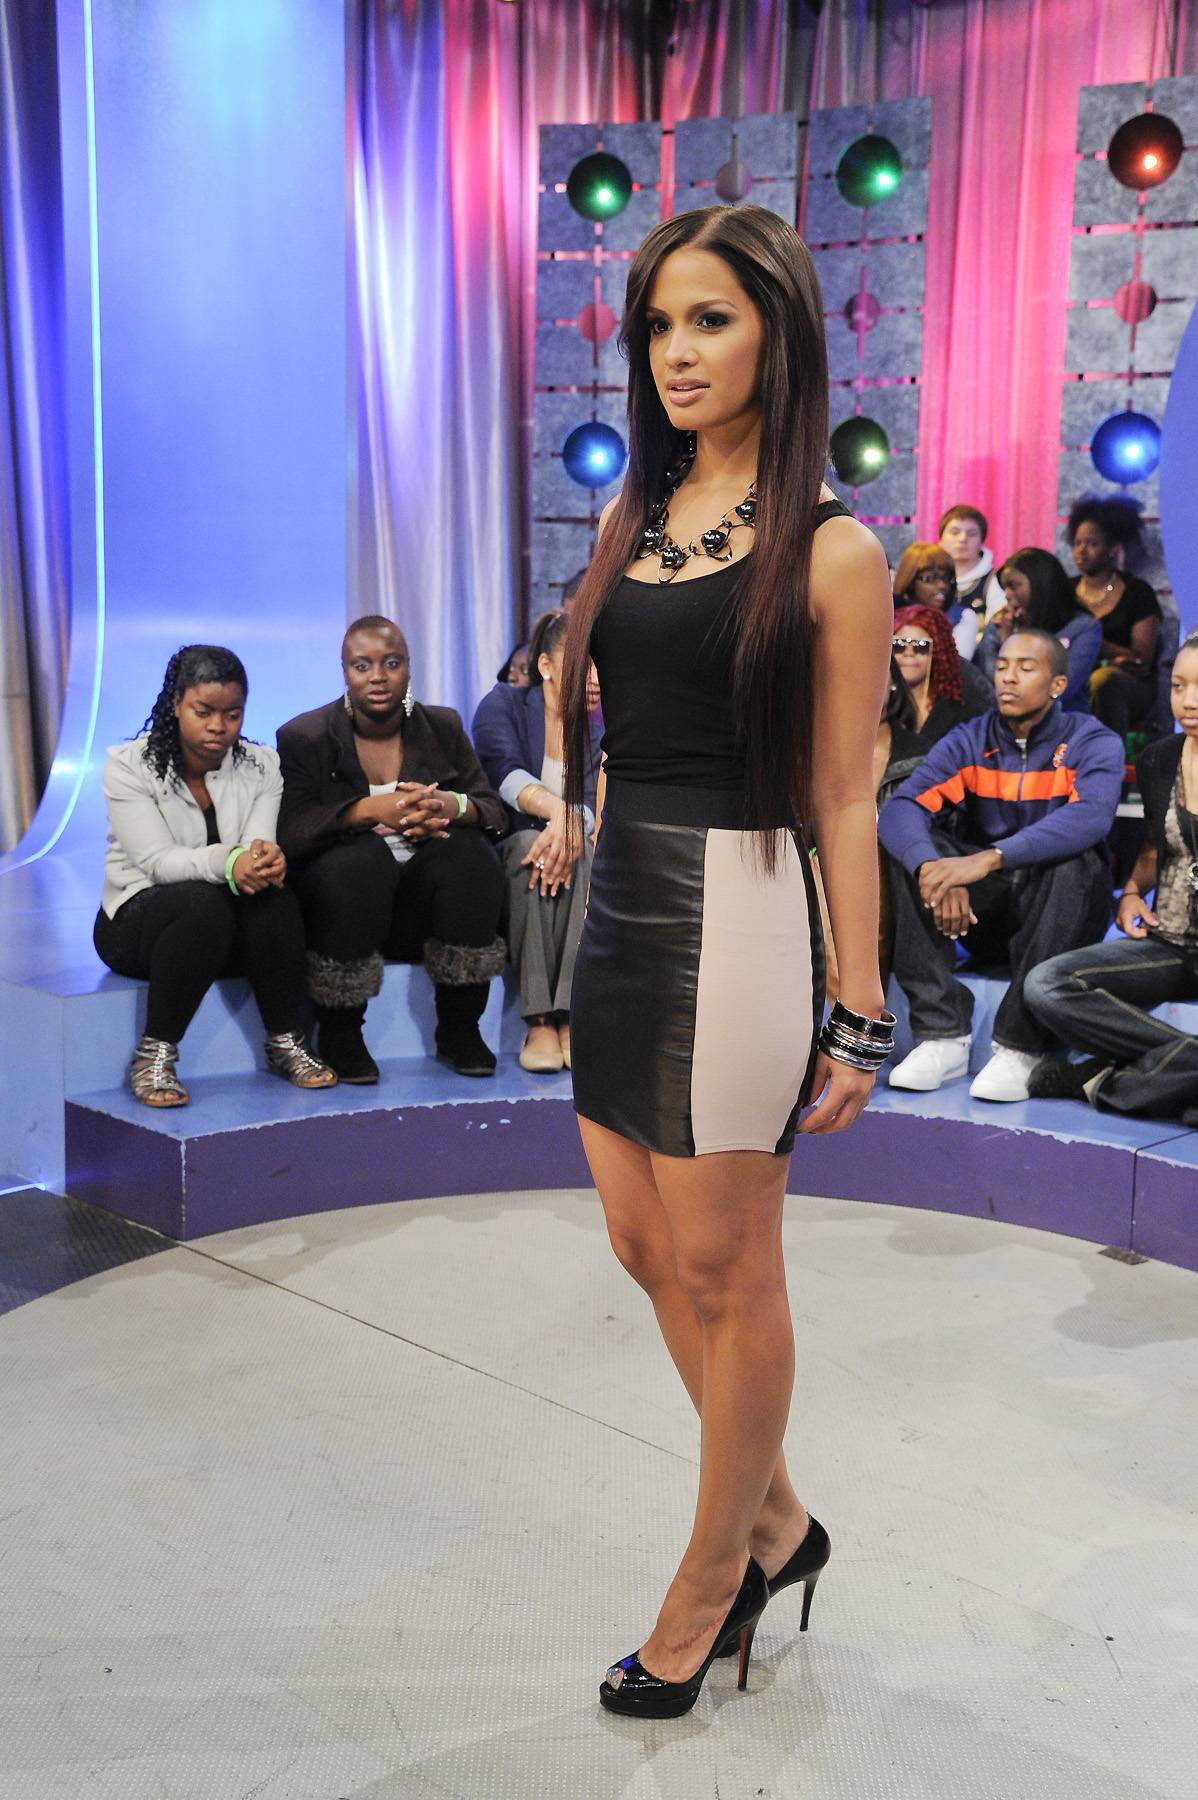 Sleek and Chic - Rocsi shows off her amazingly fit body in this black outfit that had a slight nude accent. She is beach ready!(Photo: John Ricard/BET)